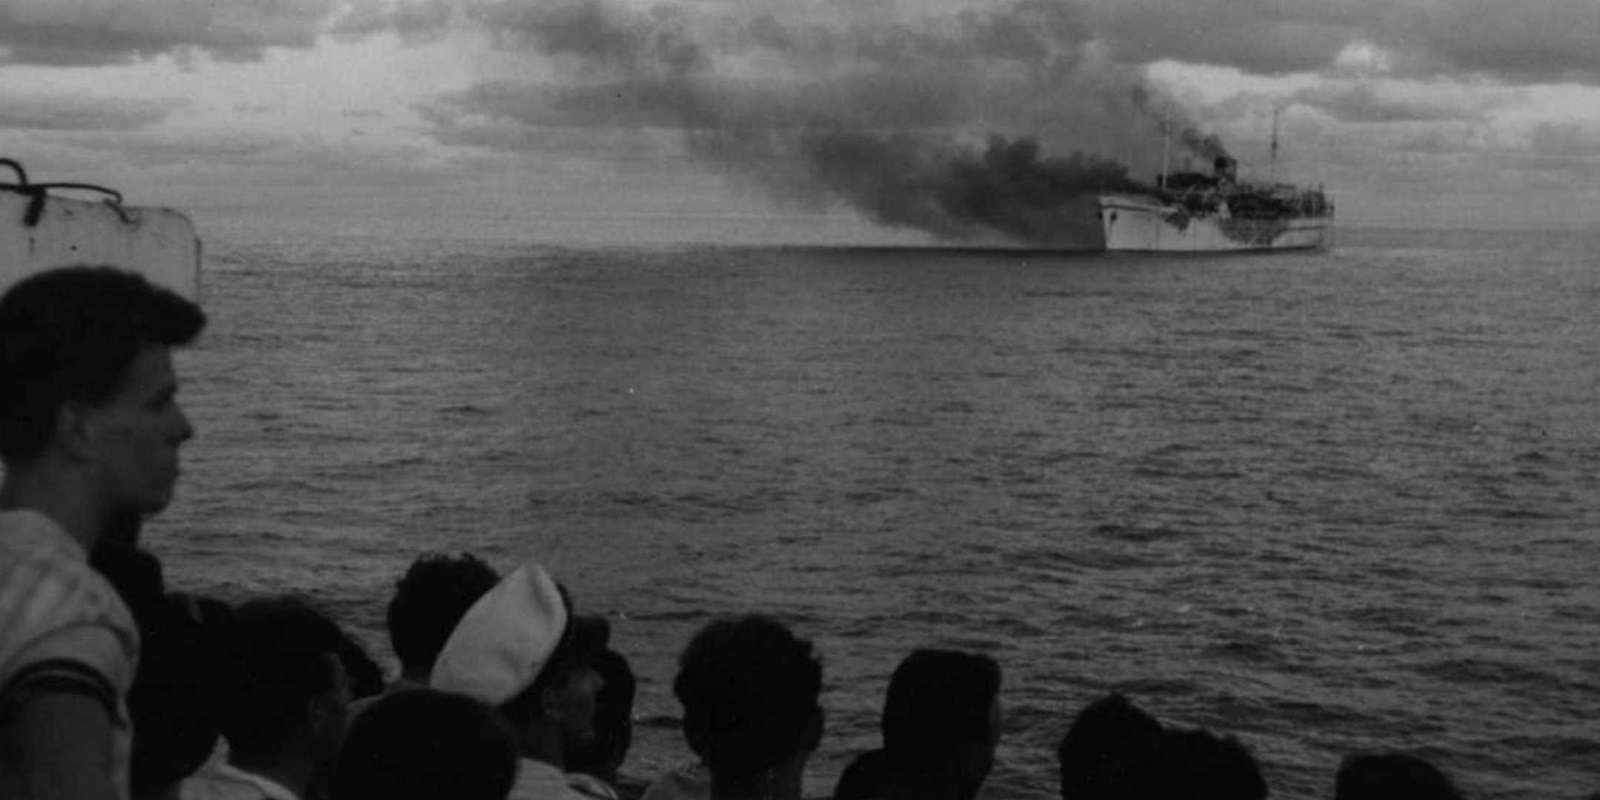 Passengers watch from the deck of City of Sydney as Skaubryn burns in the Indian Ocean, 1958. ANMM Collection Gift from Barbara Alysen ANMS0214[005]. Reproduced courtesy International Organisation for Migration